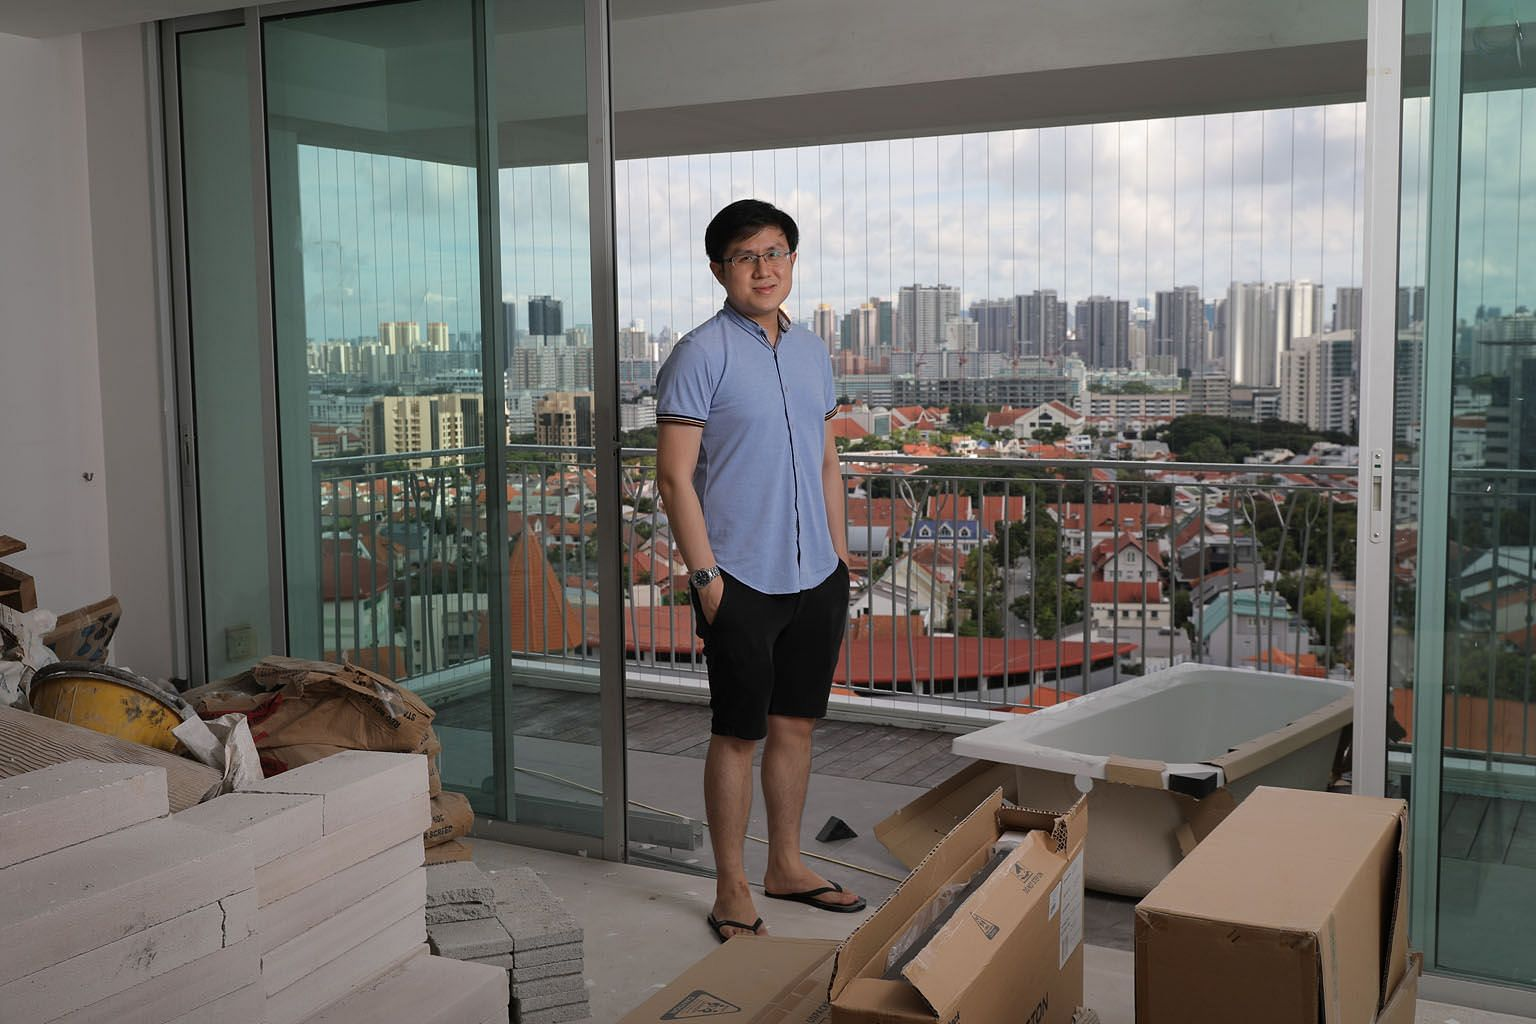 """Mr Wong Jing Yean's 120 sq m DBSS unit at Natura Loft in Bishan Street 24 has a balcony and offers a panoramic view of the city skyline. The million-dollar price tag was an """"attractive price point"""" for the 32-year-old, as the unit has double the spac"""